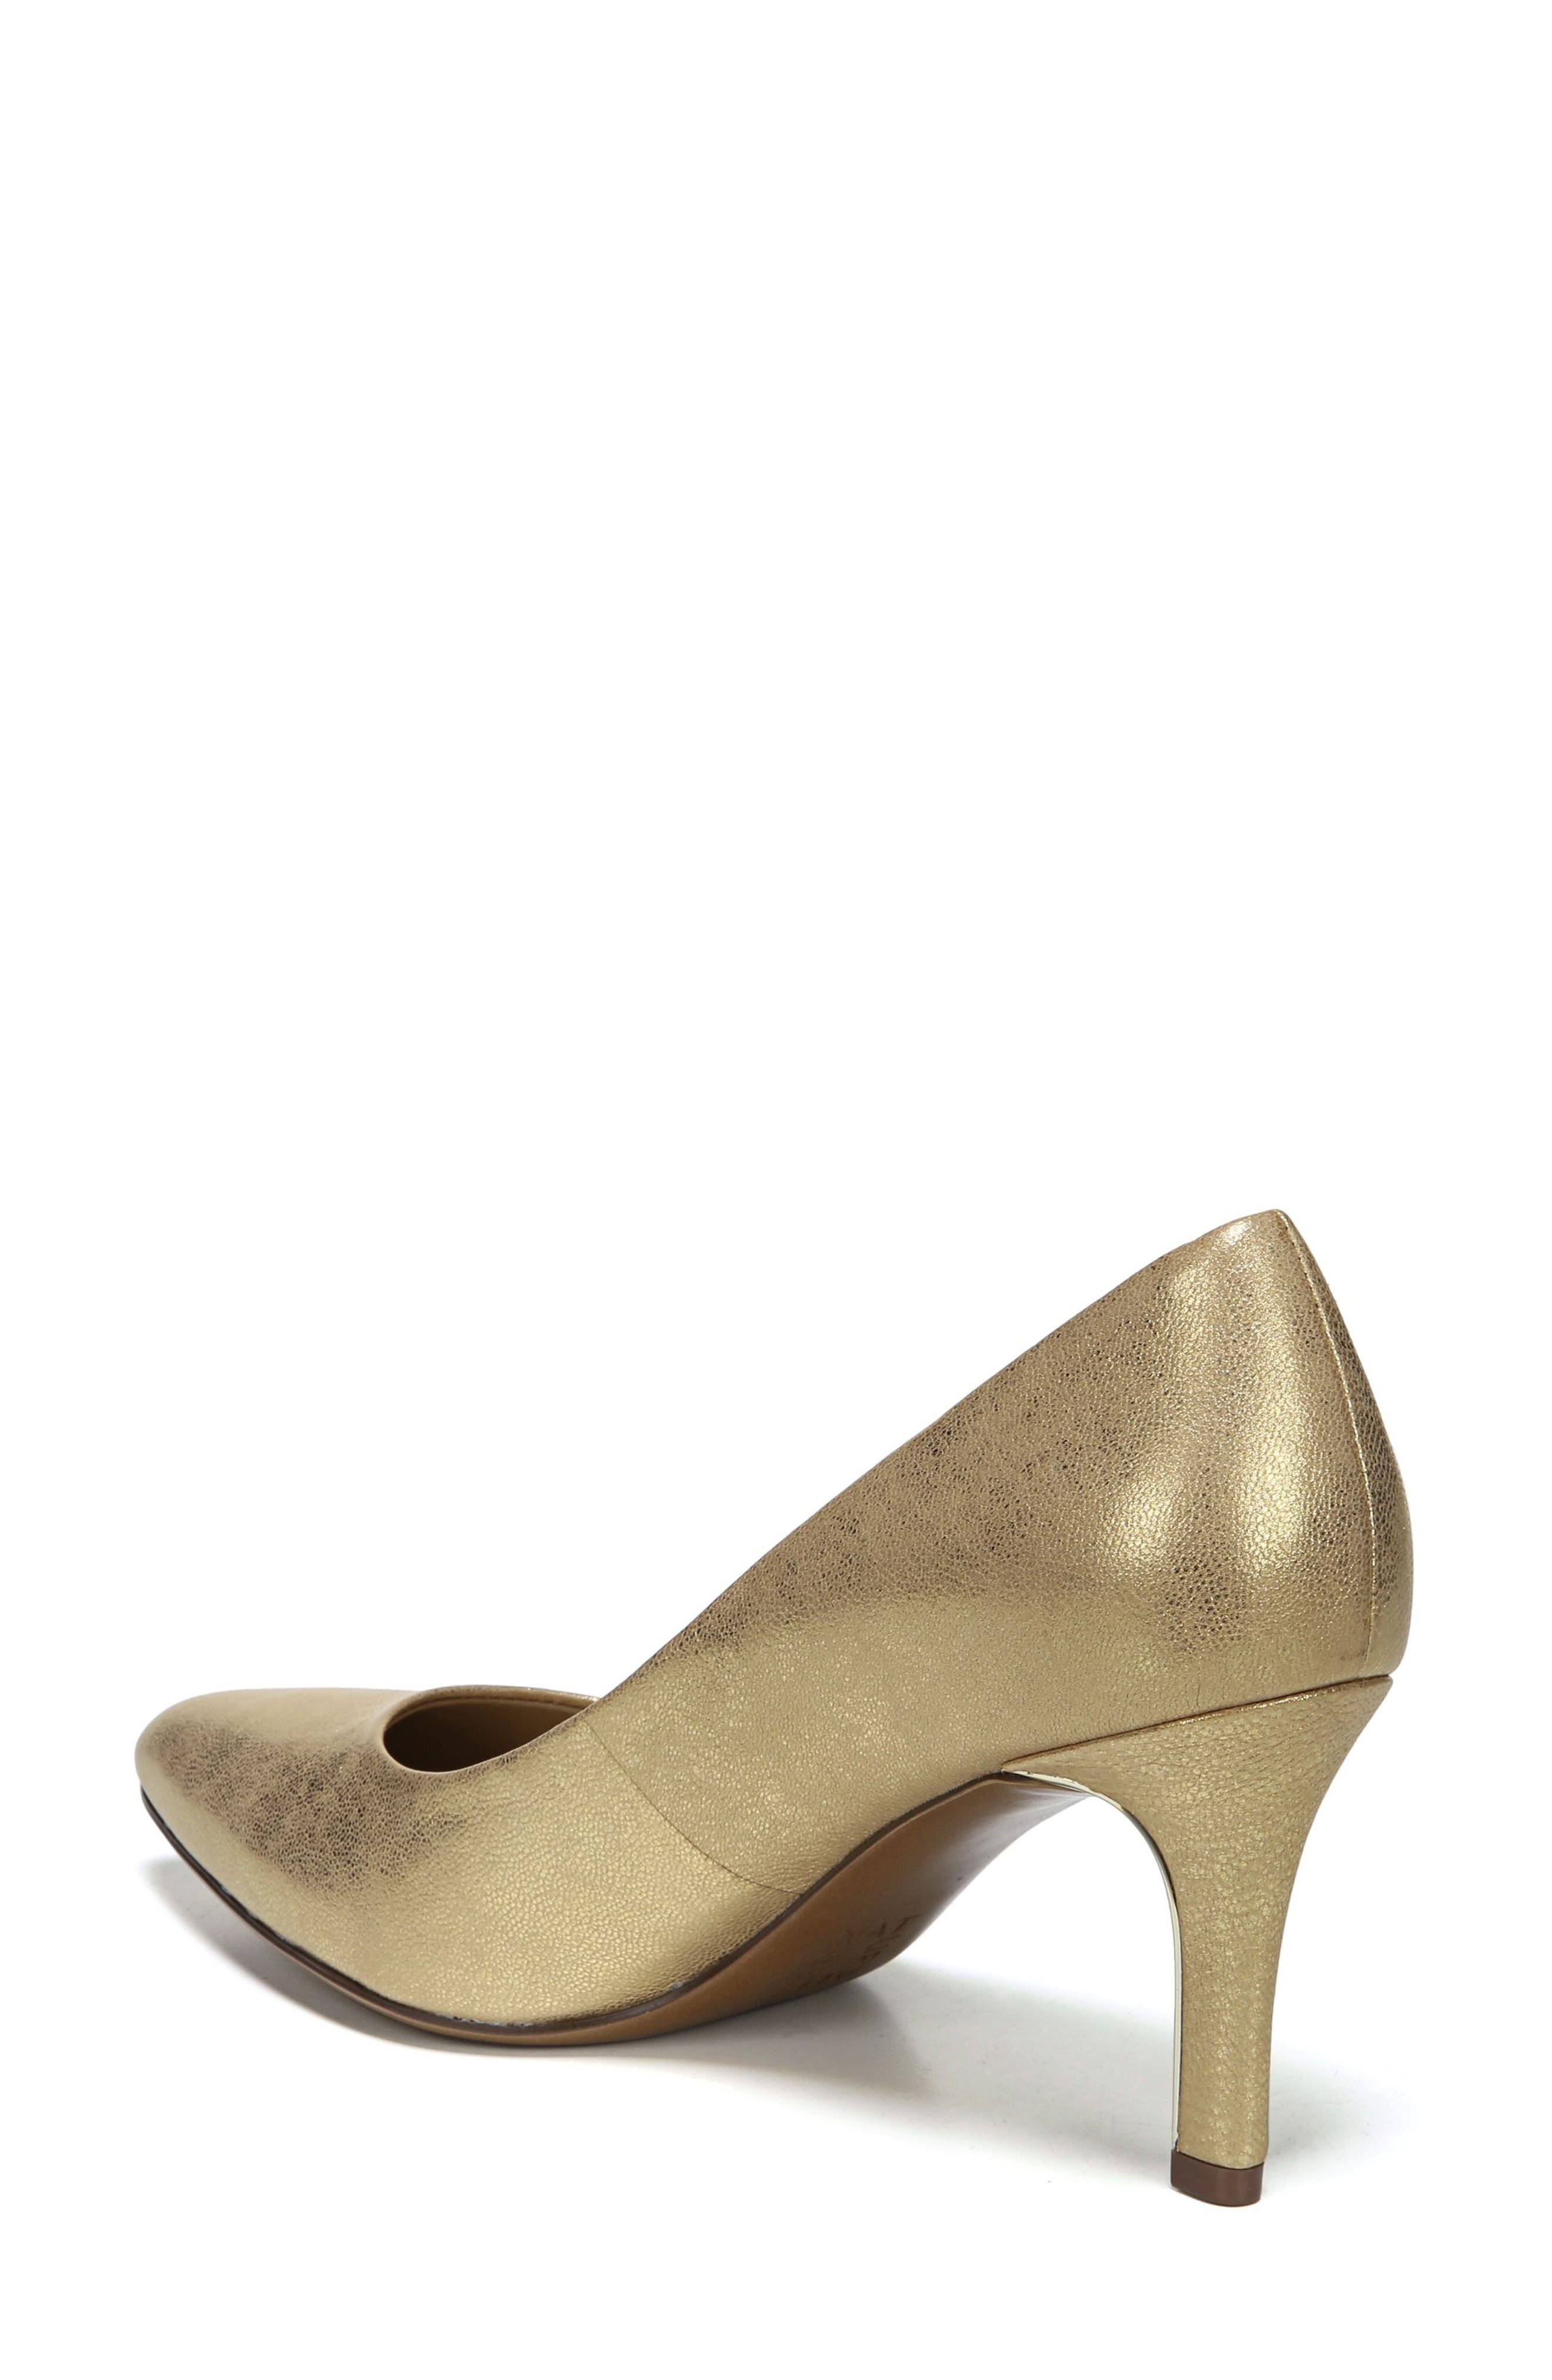 NATURALIZER, Natalie Pointy Toe Pump, Alternate thumbnail 2, color, GOLD LEATHER